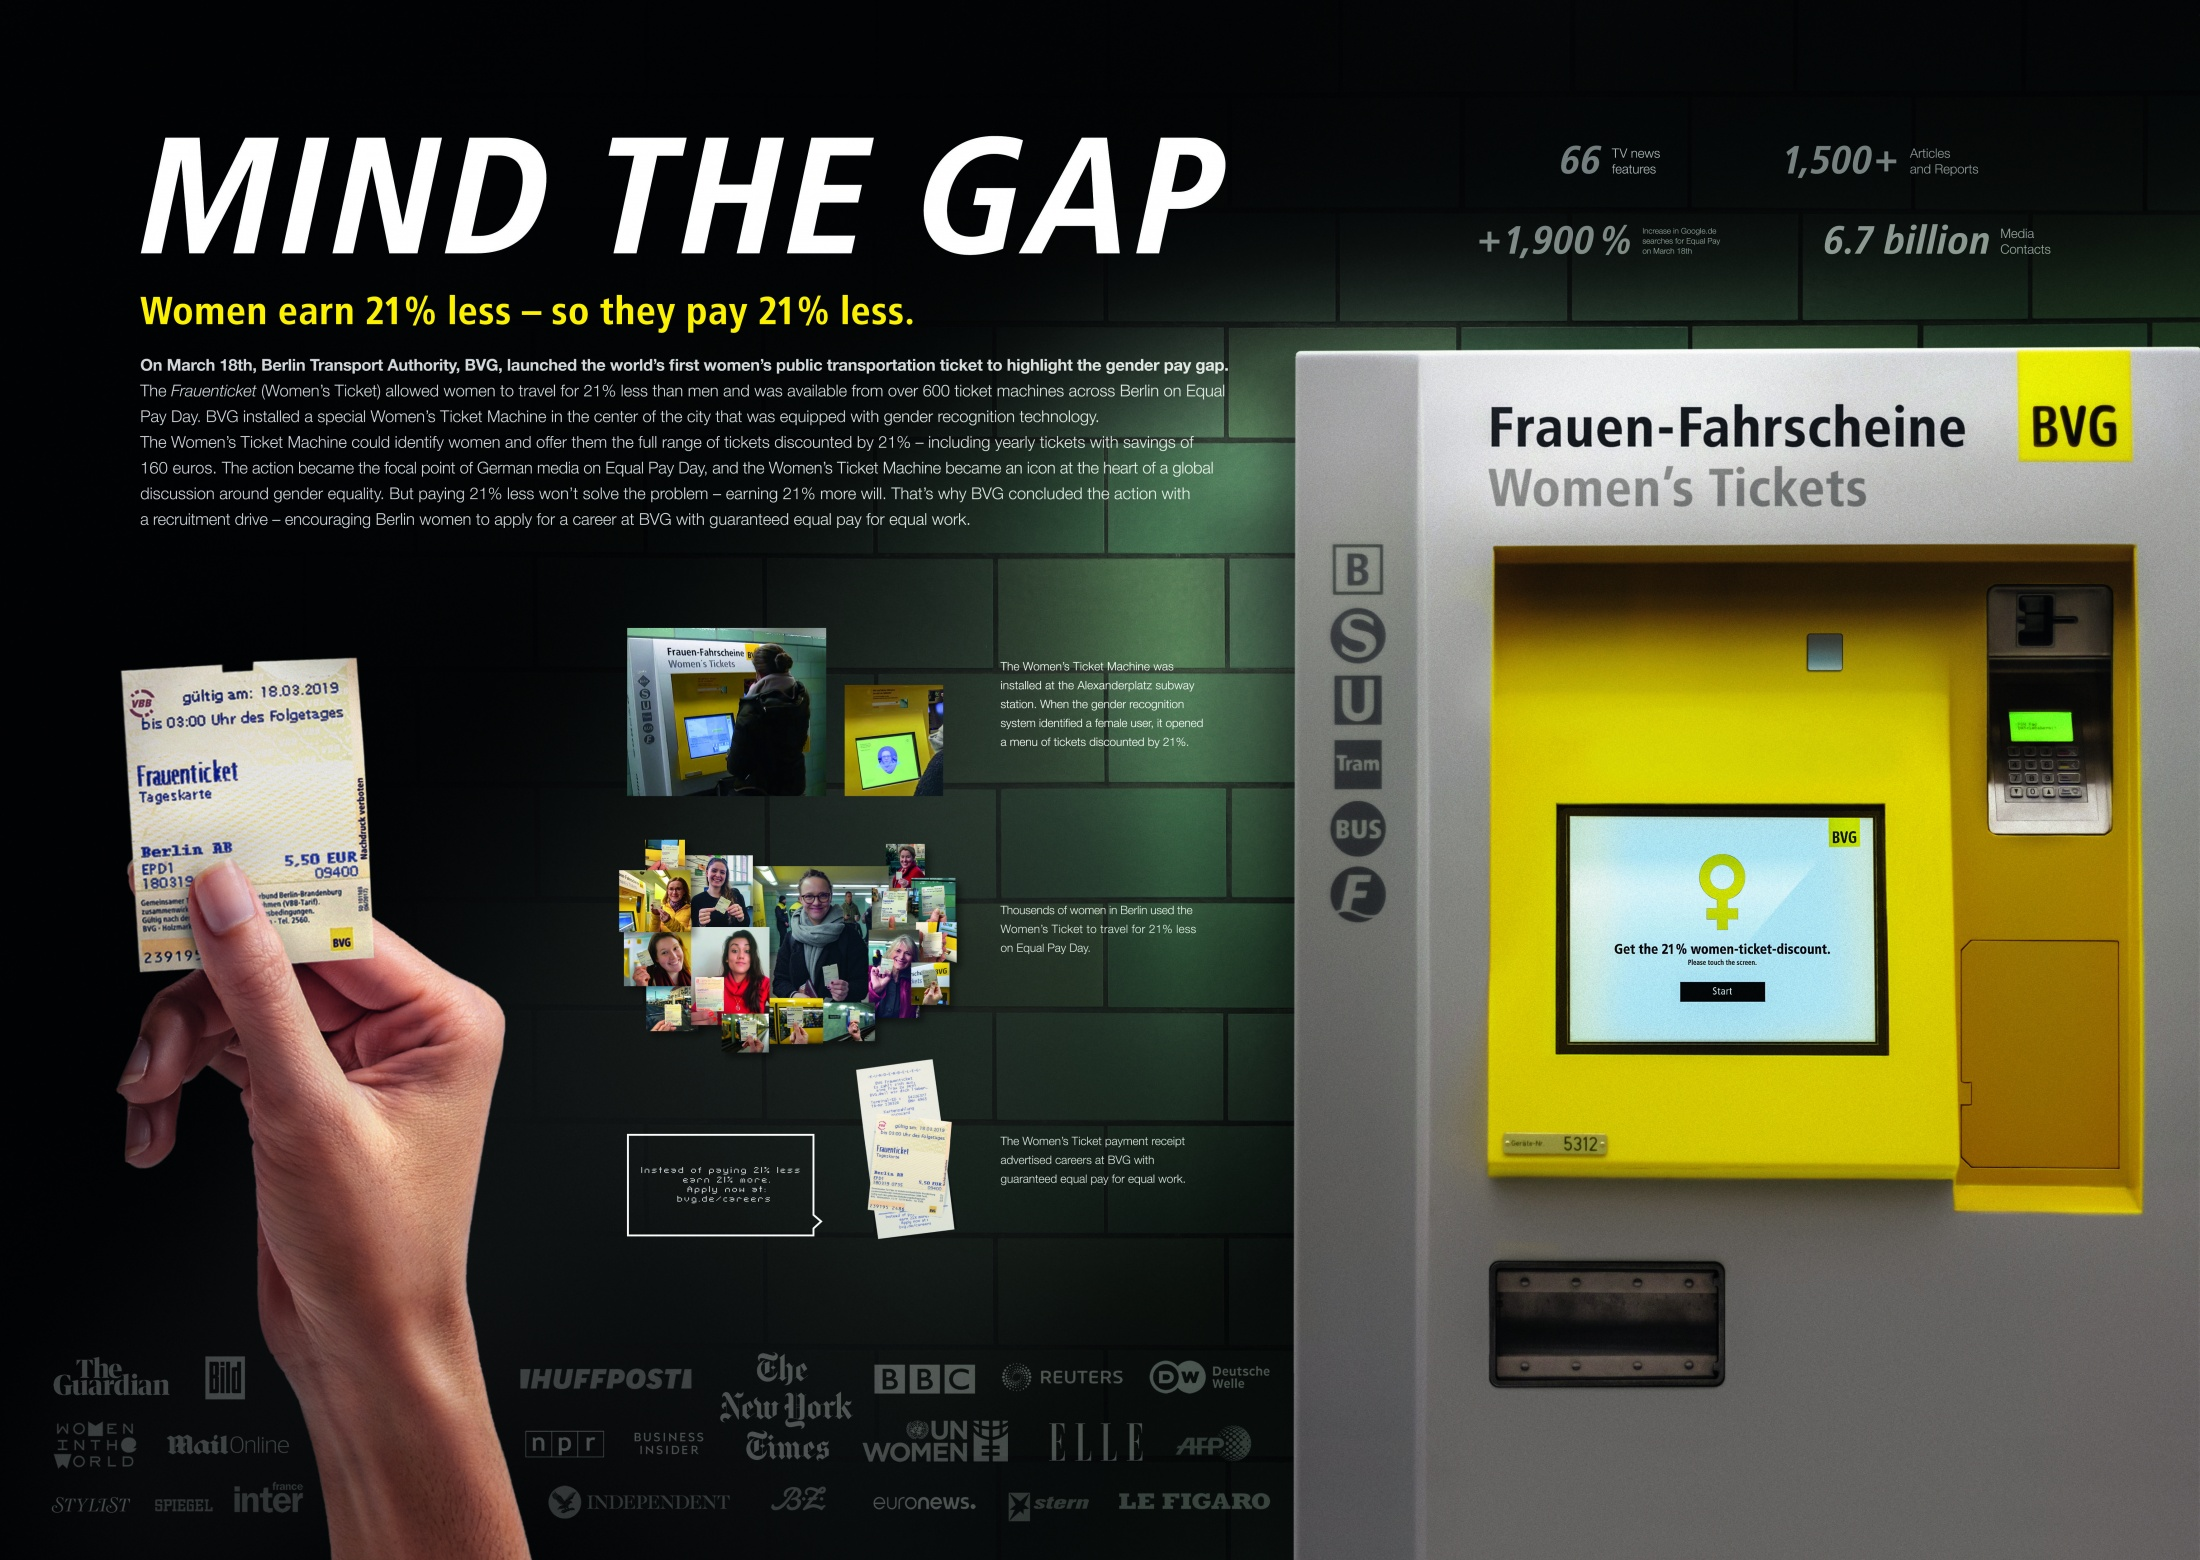 Thumbnail for MIND THE GAP